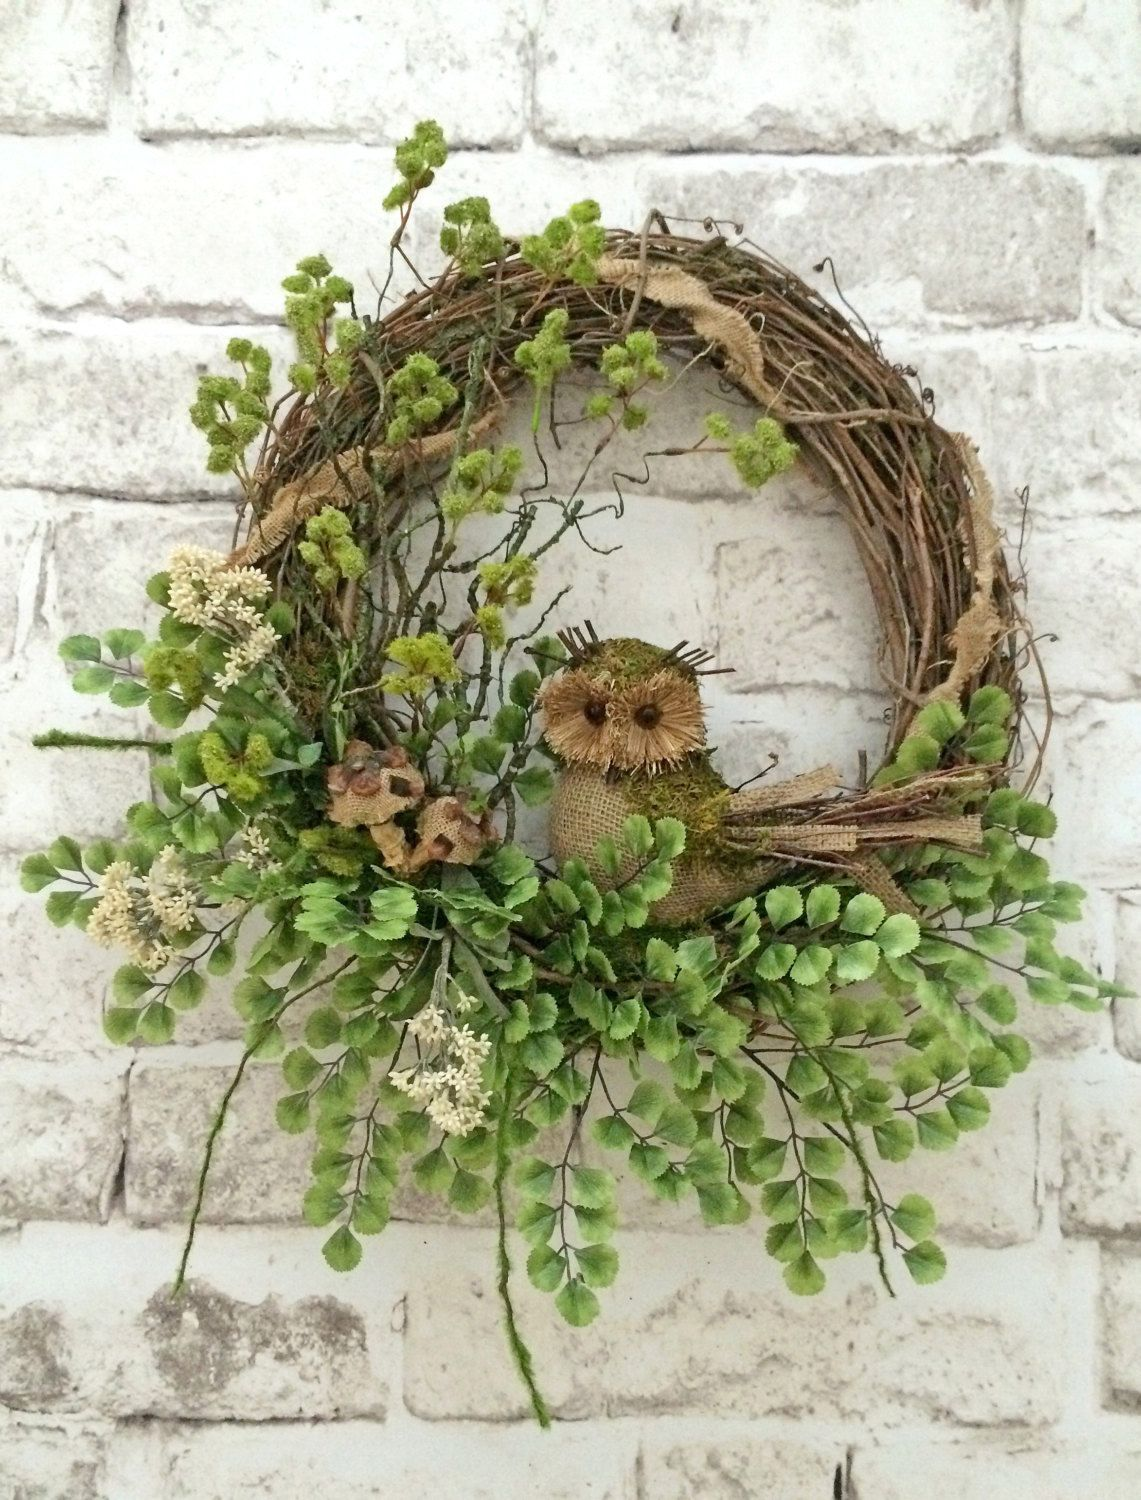 DIY Fall Owl Wreaths | DIY | DIY wreath | fall | owls | wreaths | DIY fall wreaths | owl wreaths | fall wreaths